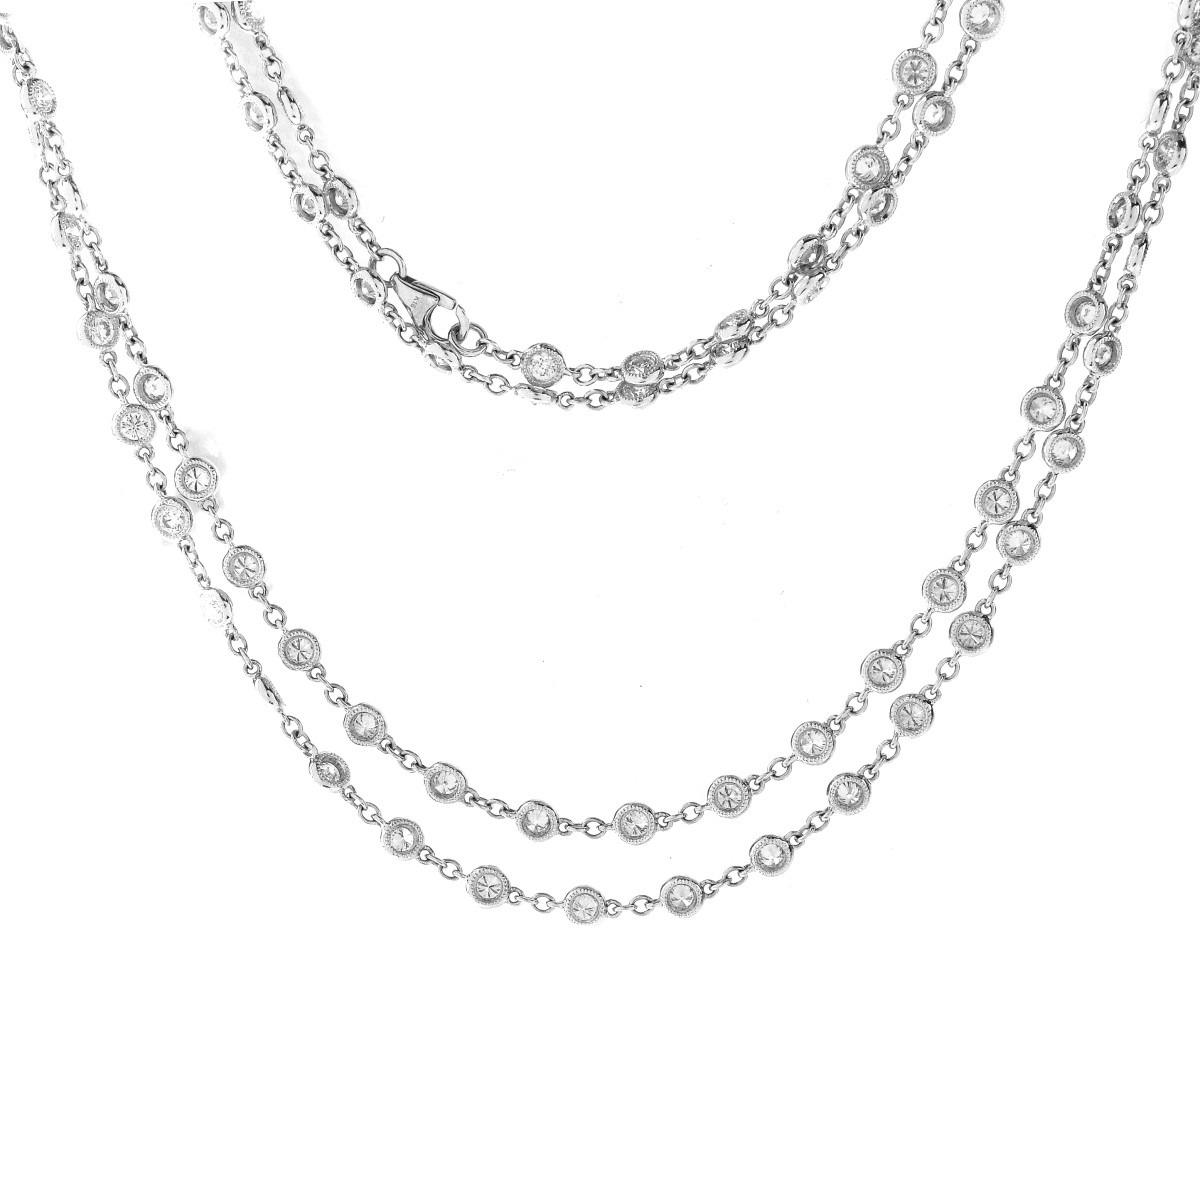 Tiffany style Diamond and 18K Gold Necklace